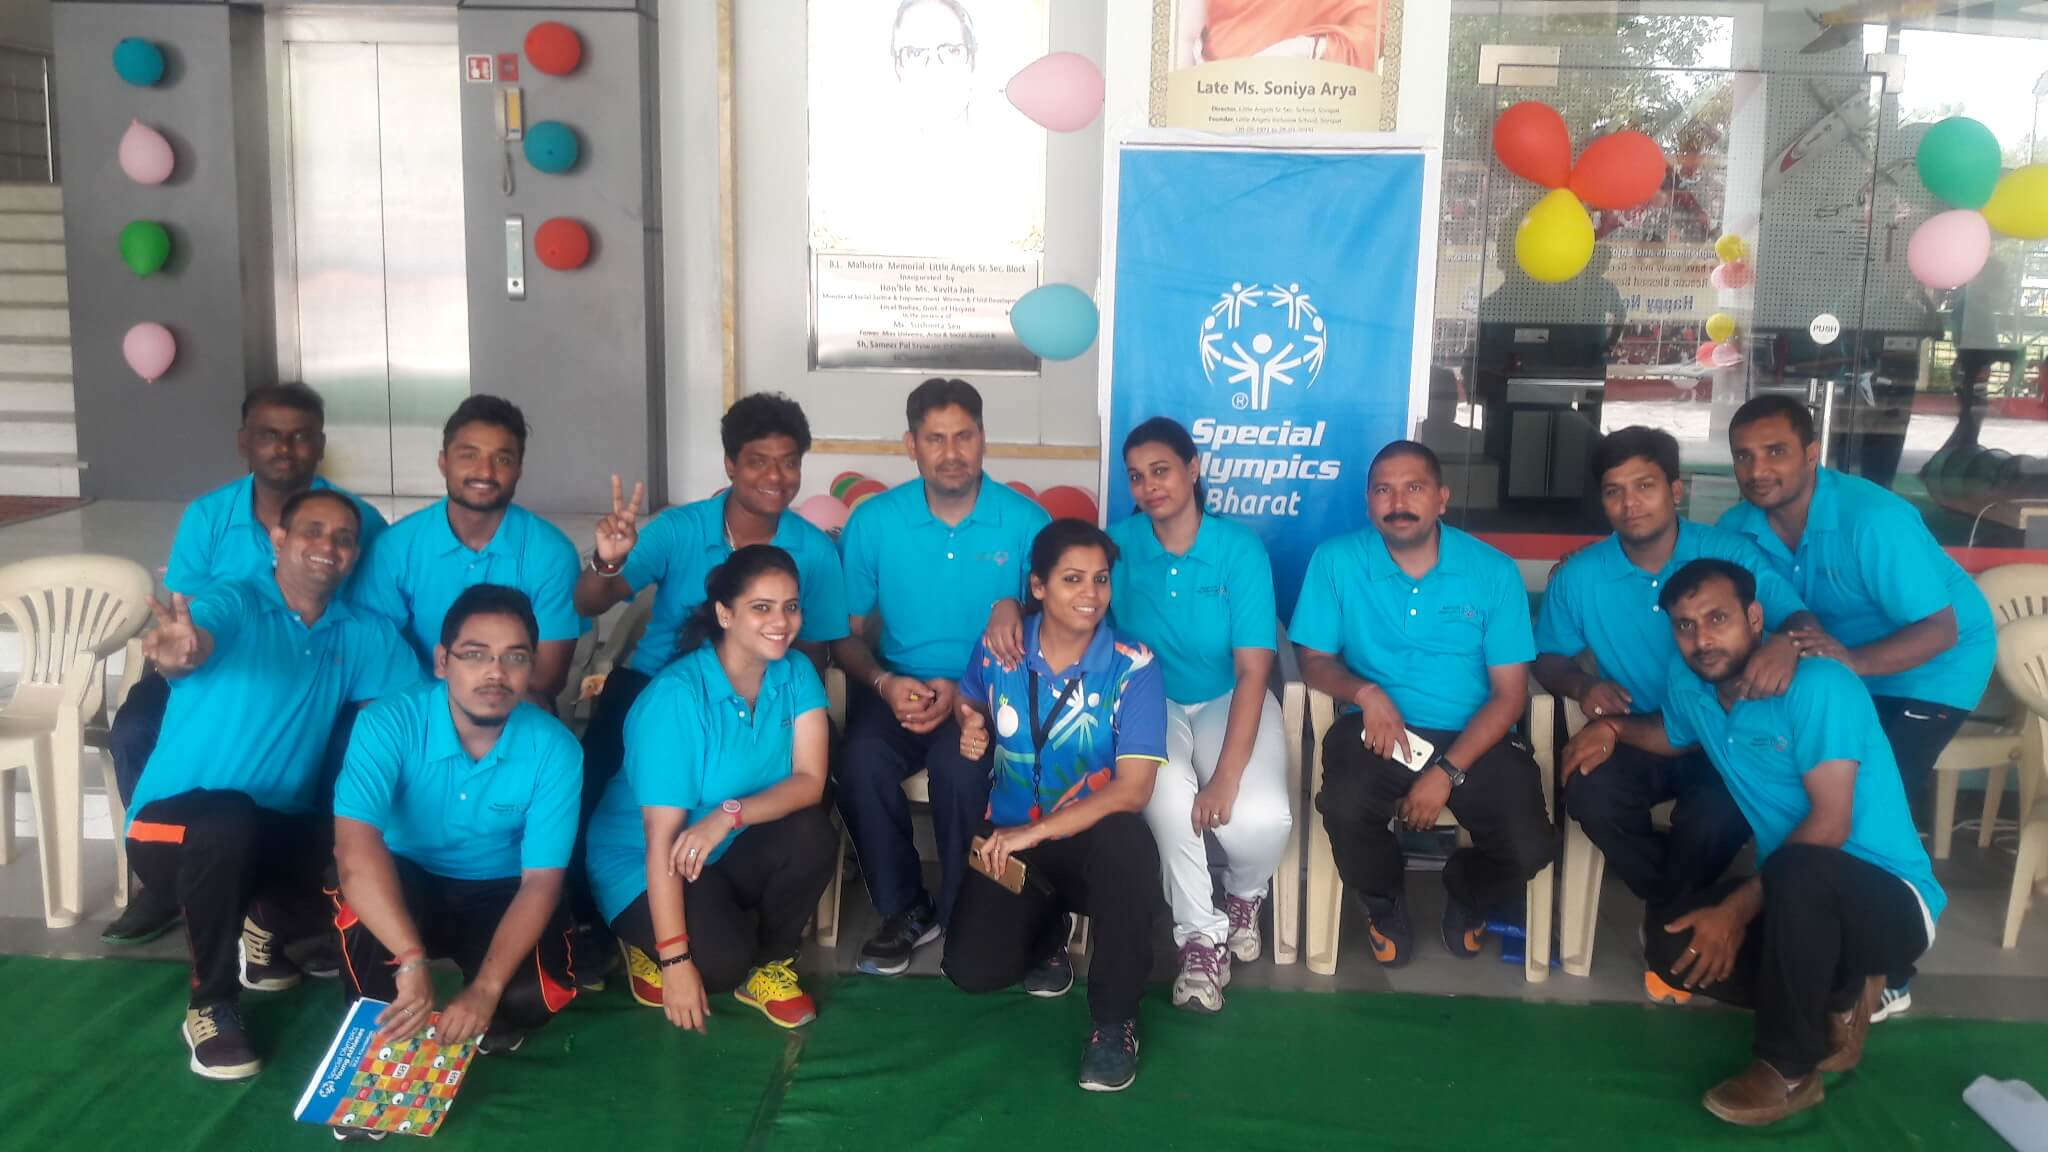 SOYA (Special Olympics Young Athletes) 27th To 29th May, 2017